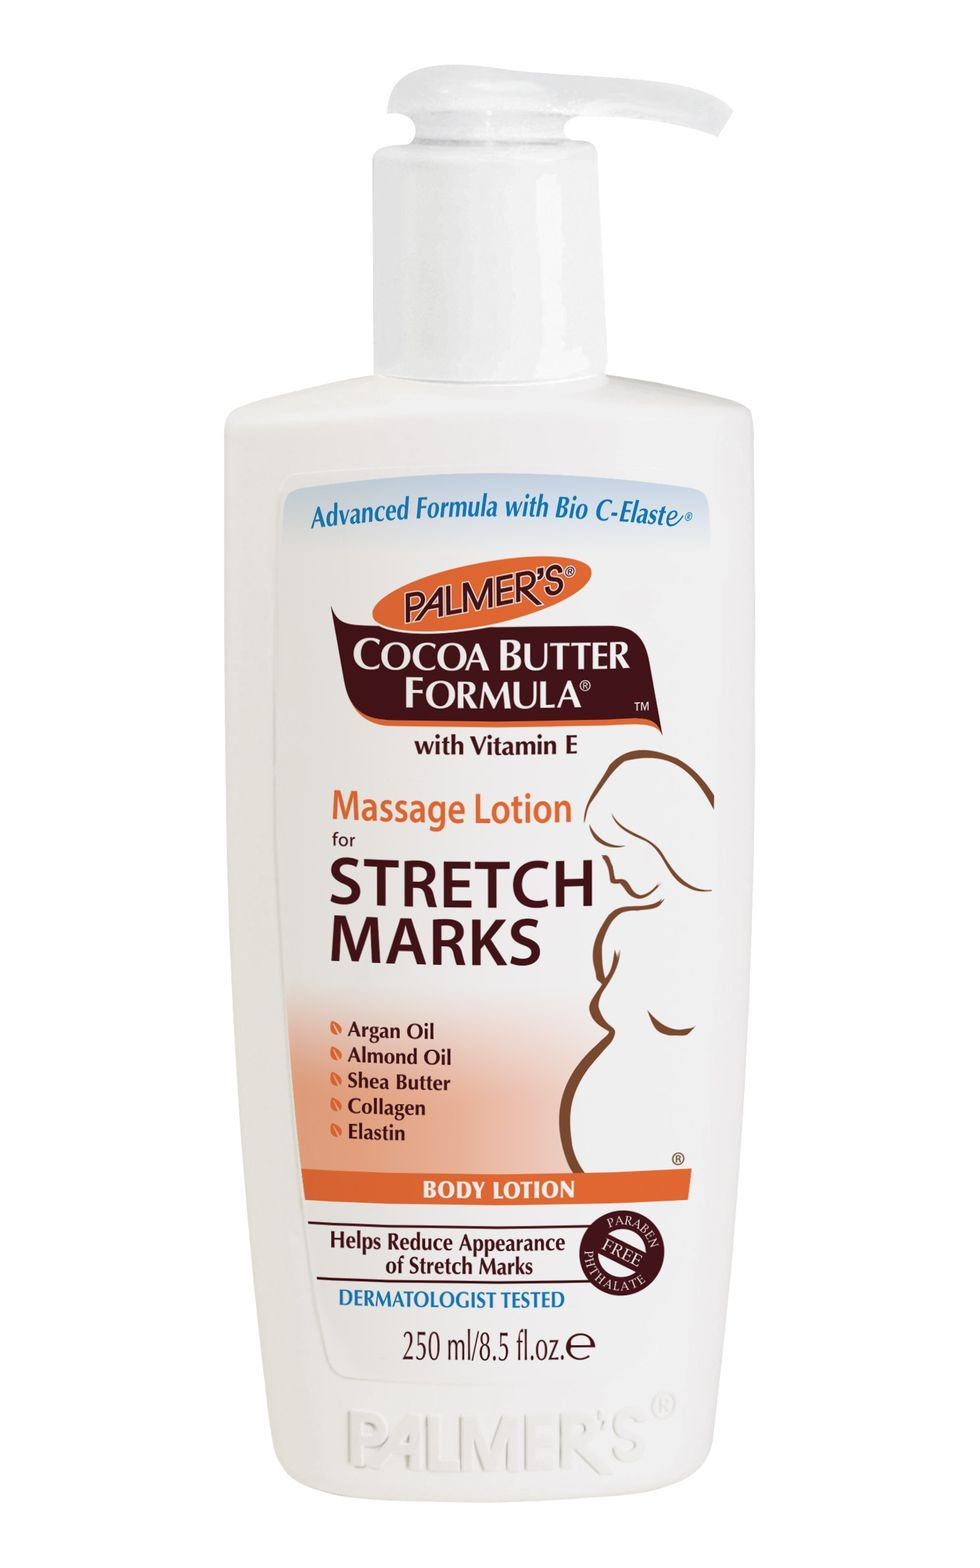 Do Stretch Mark Products Actually Work Lotion For Stretch Marks Treat Stretch Marks Palmers Cocoa Butter Formula